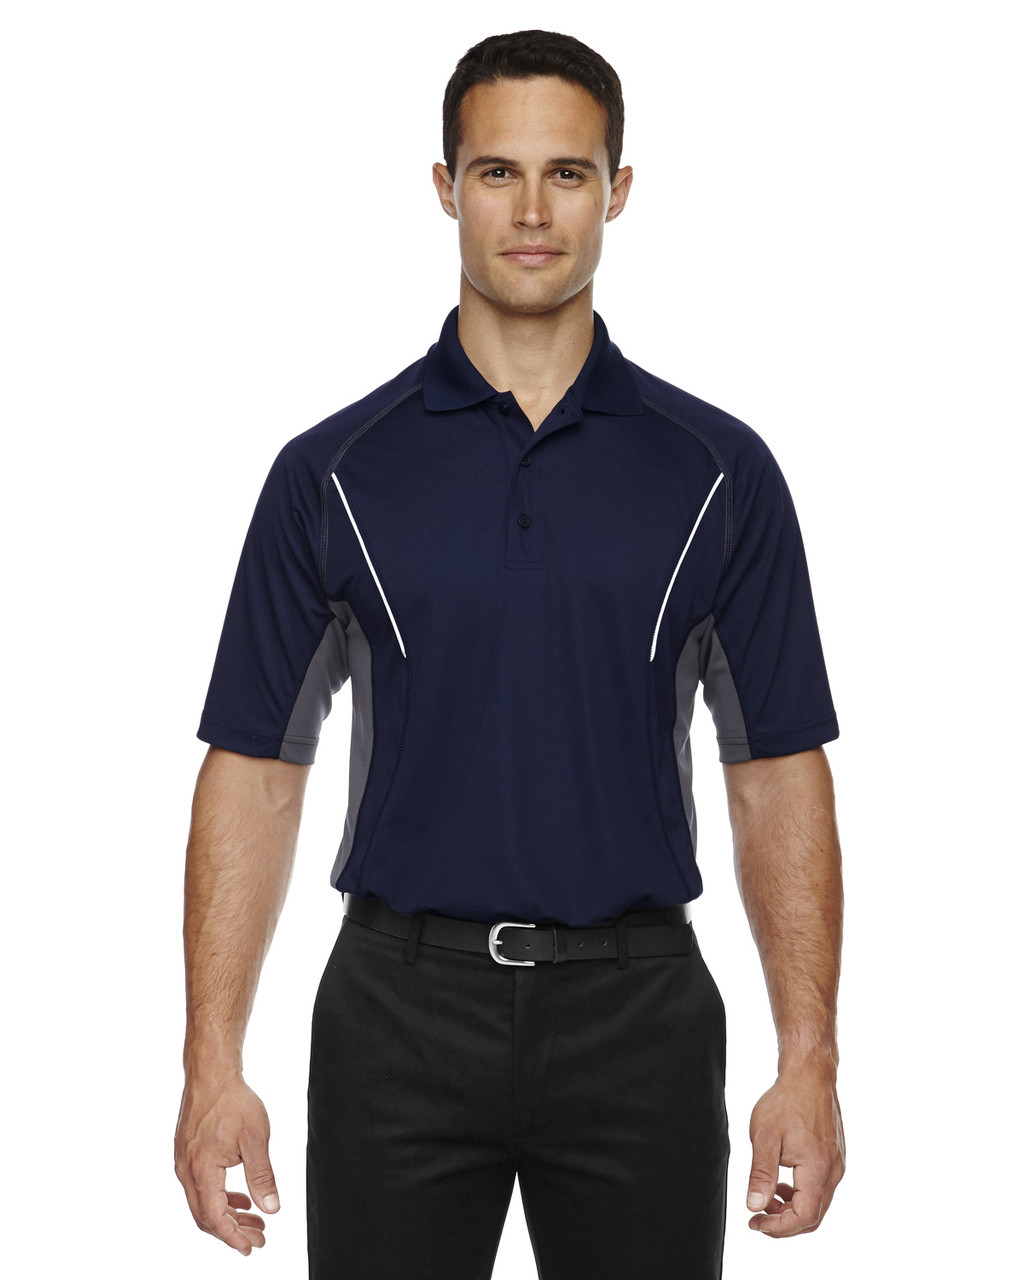 Classic Navy - 85110 Ash City - Extreme Eperformance Men's Parallel Polo with Piping